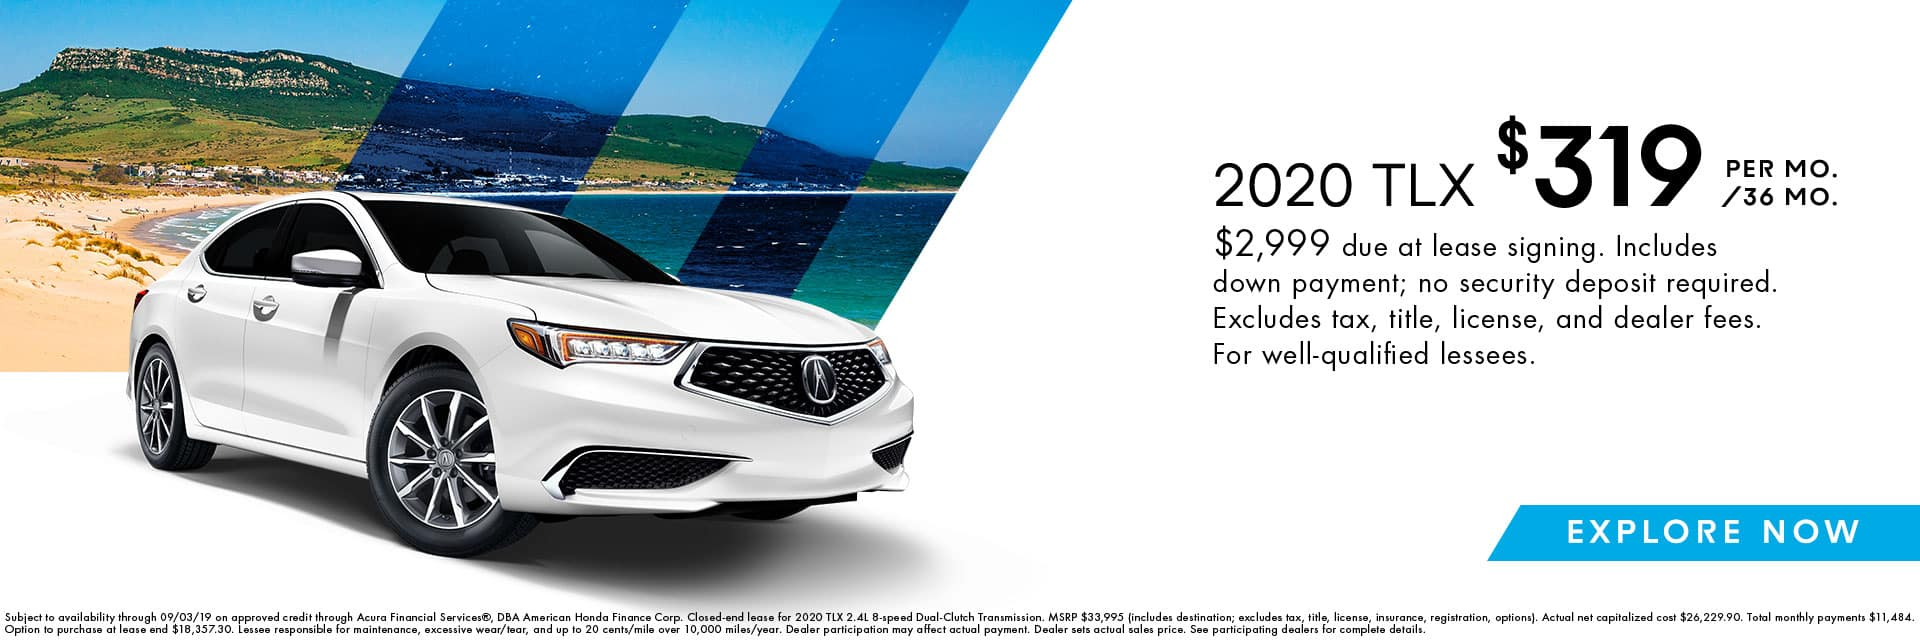 Car Dealerships Open Today >> Curry Acura Car Dealership Scarsdale Westchester Ny